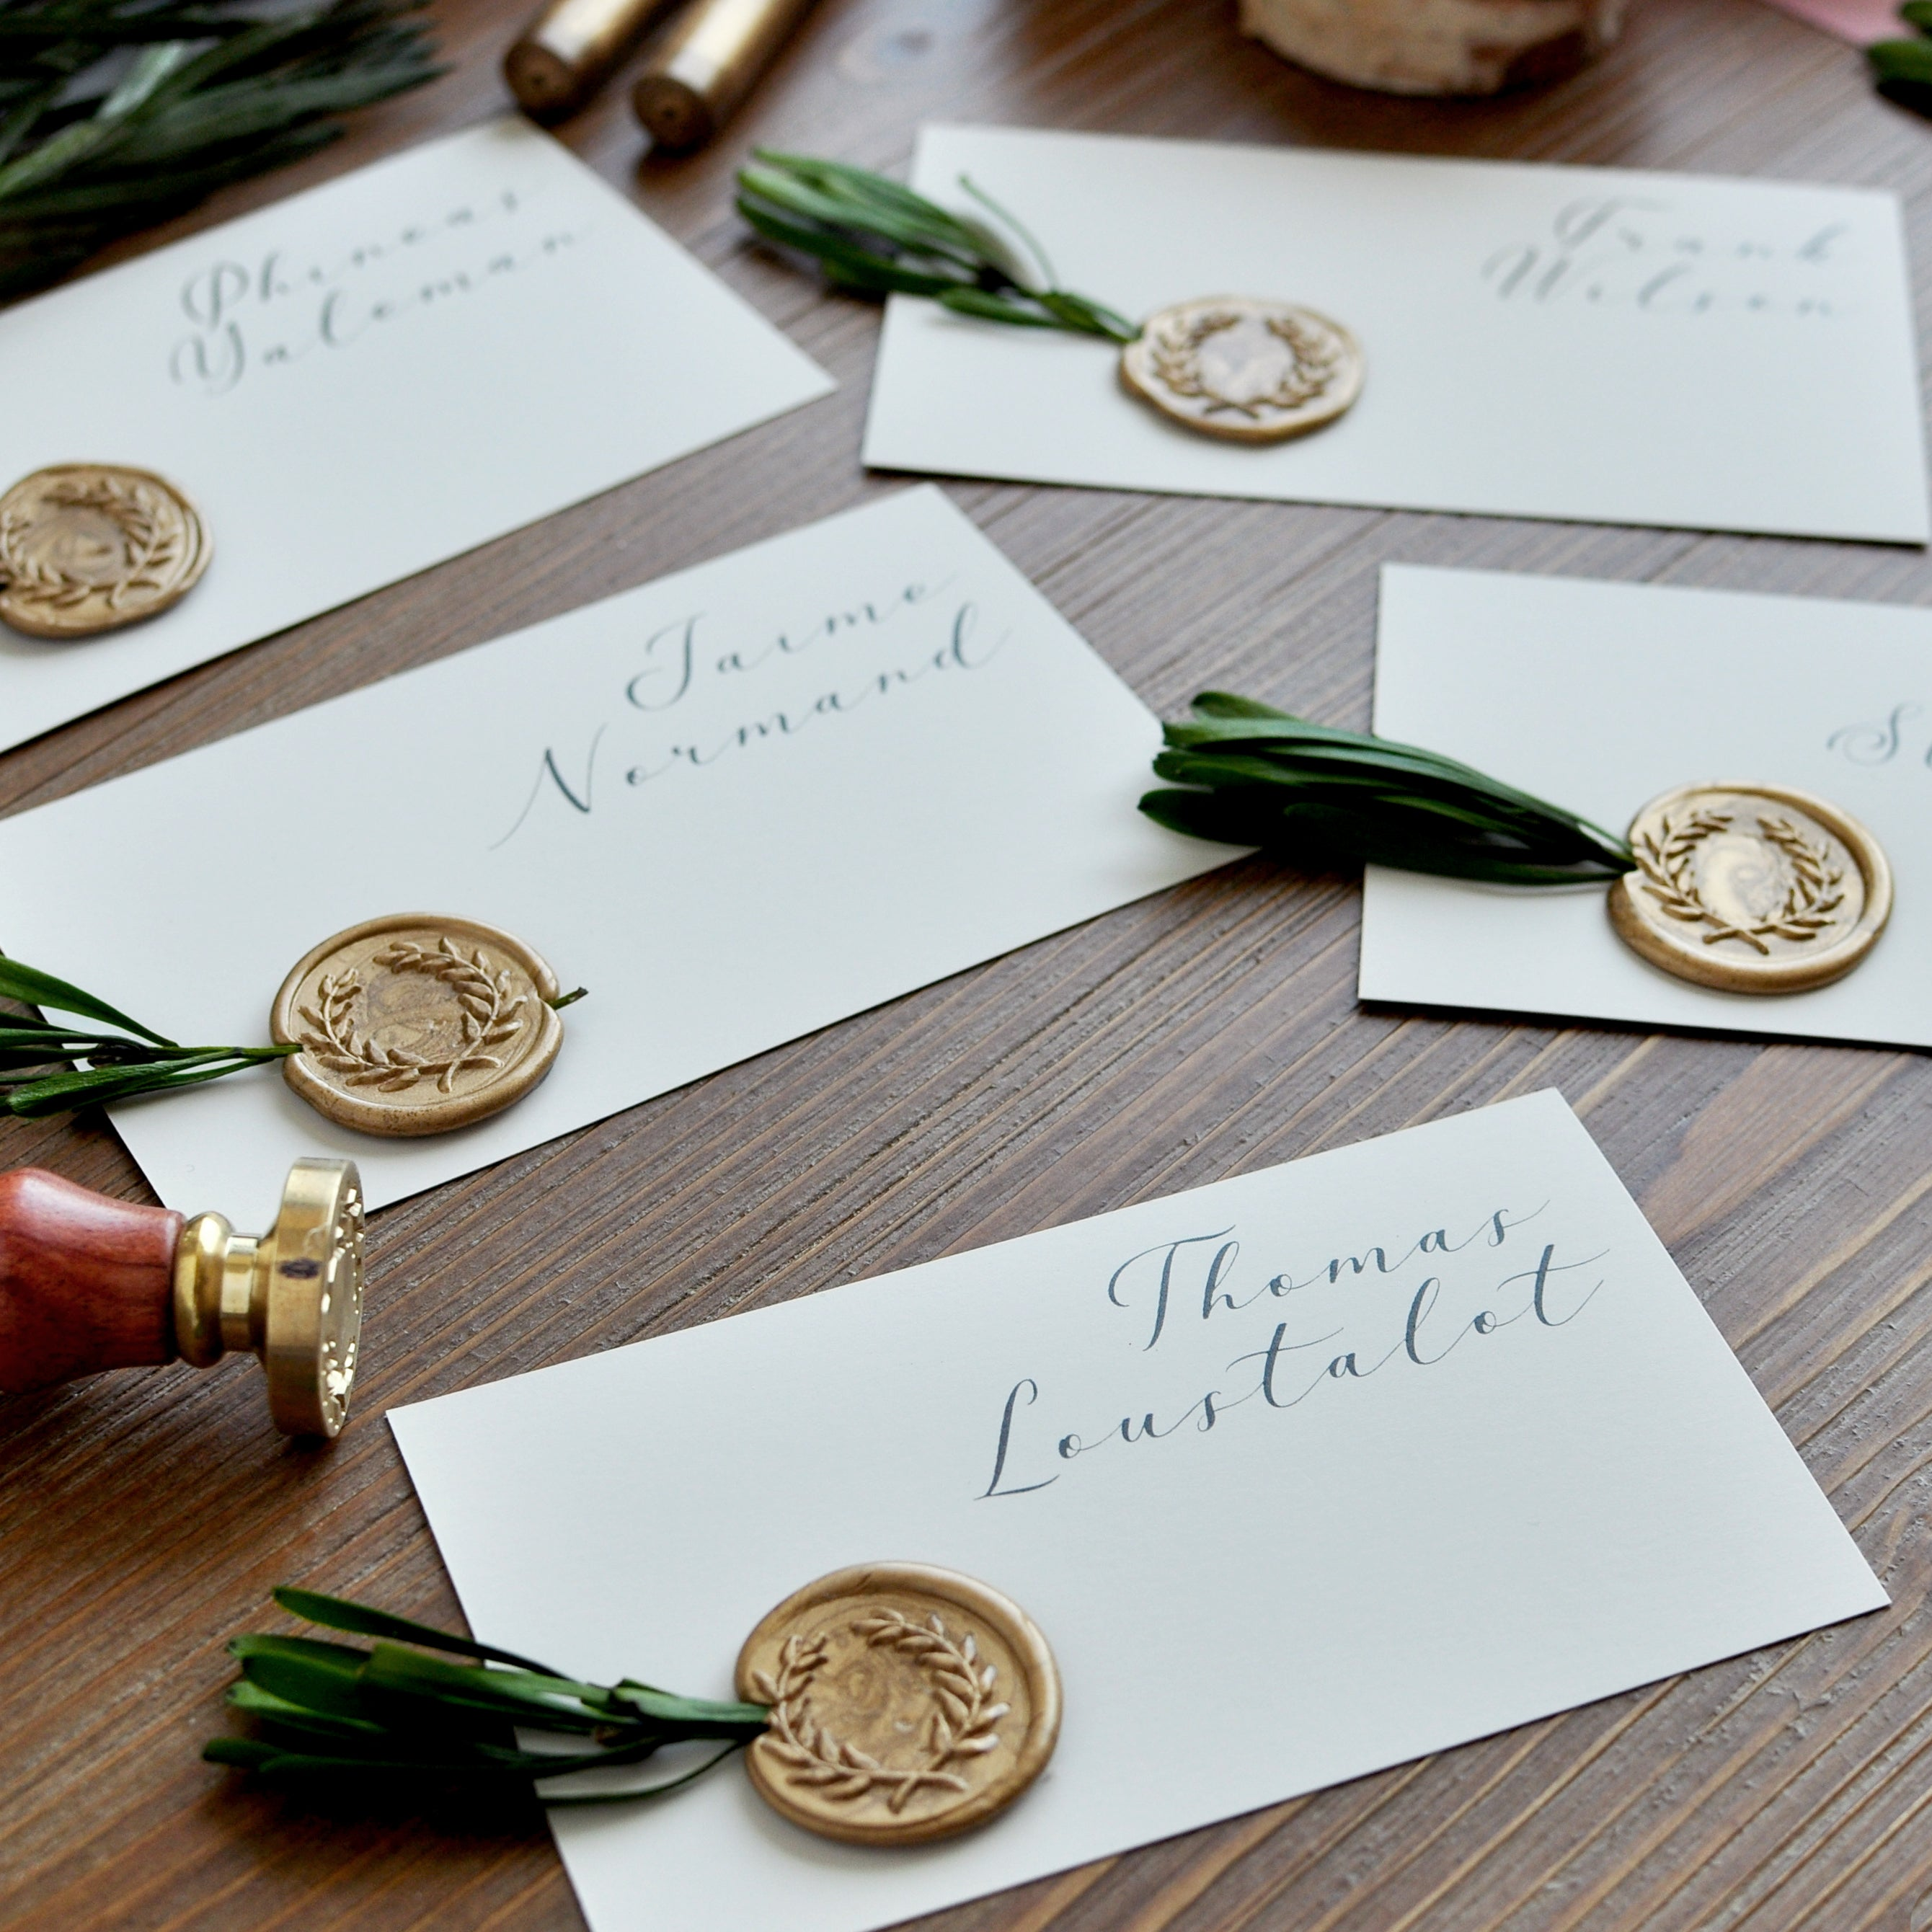 Wedding Place Card. (10 Set of 10) Place Cards Wedding with Greenery